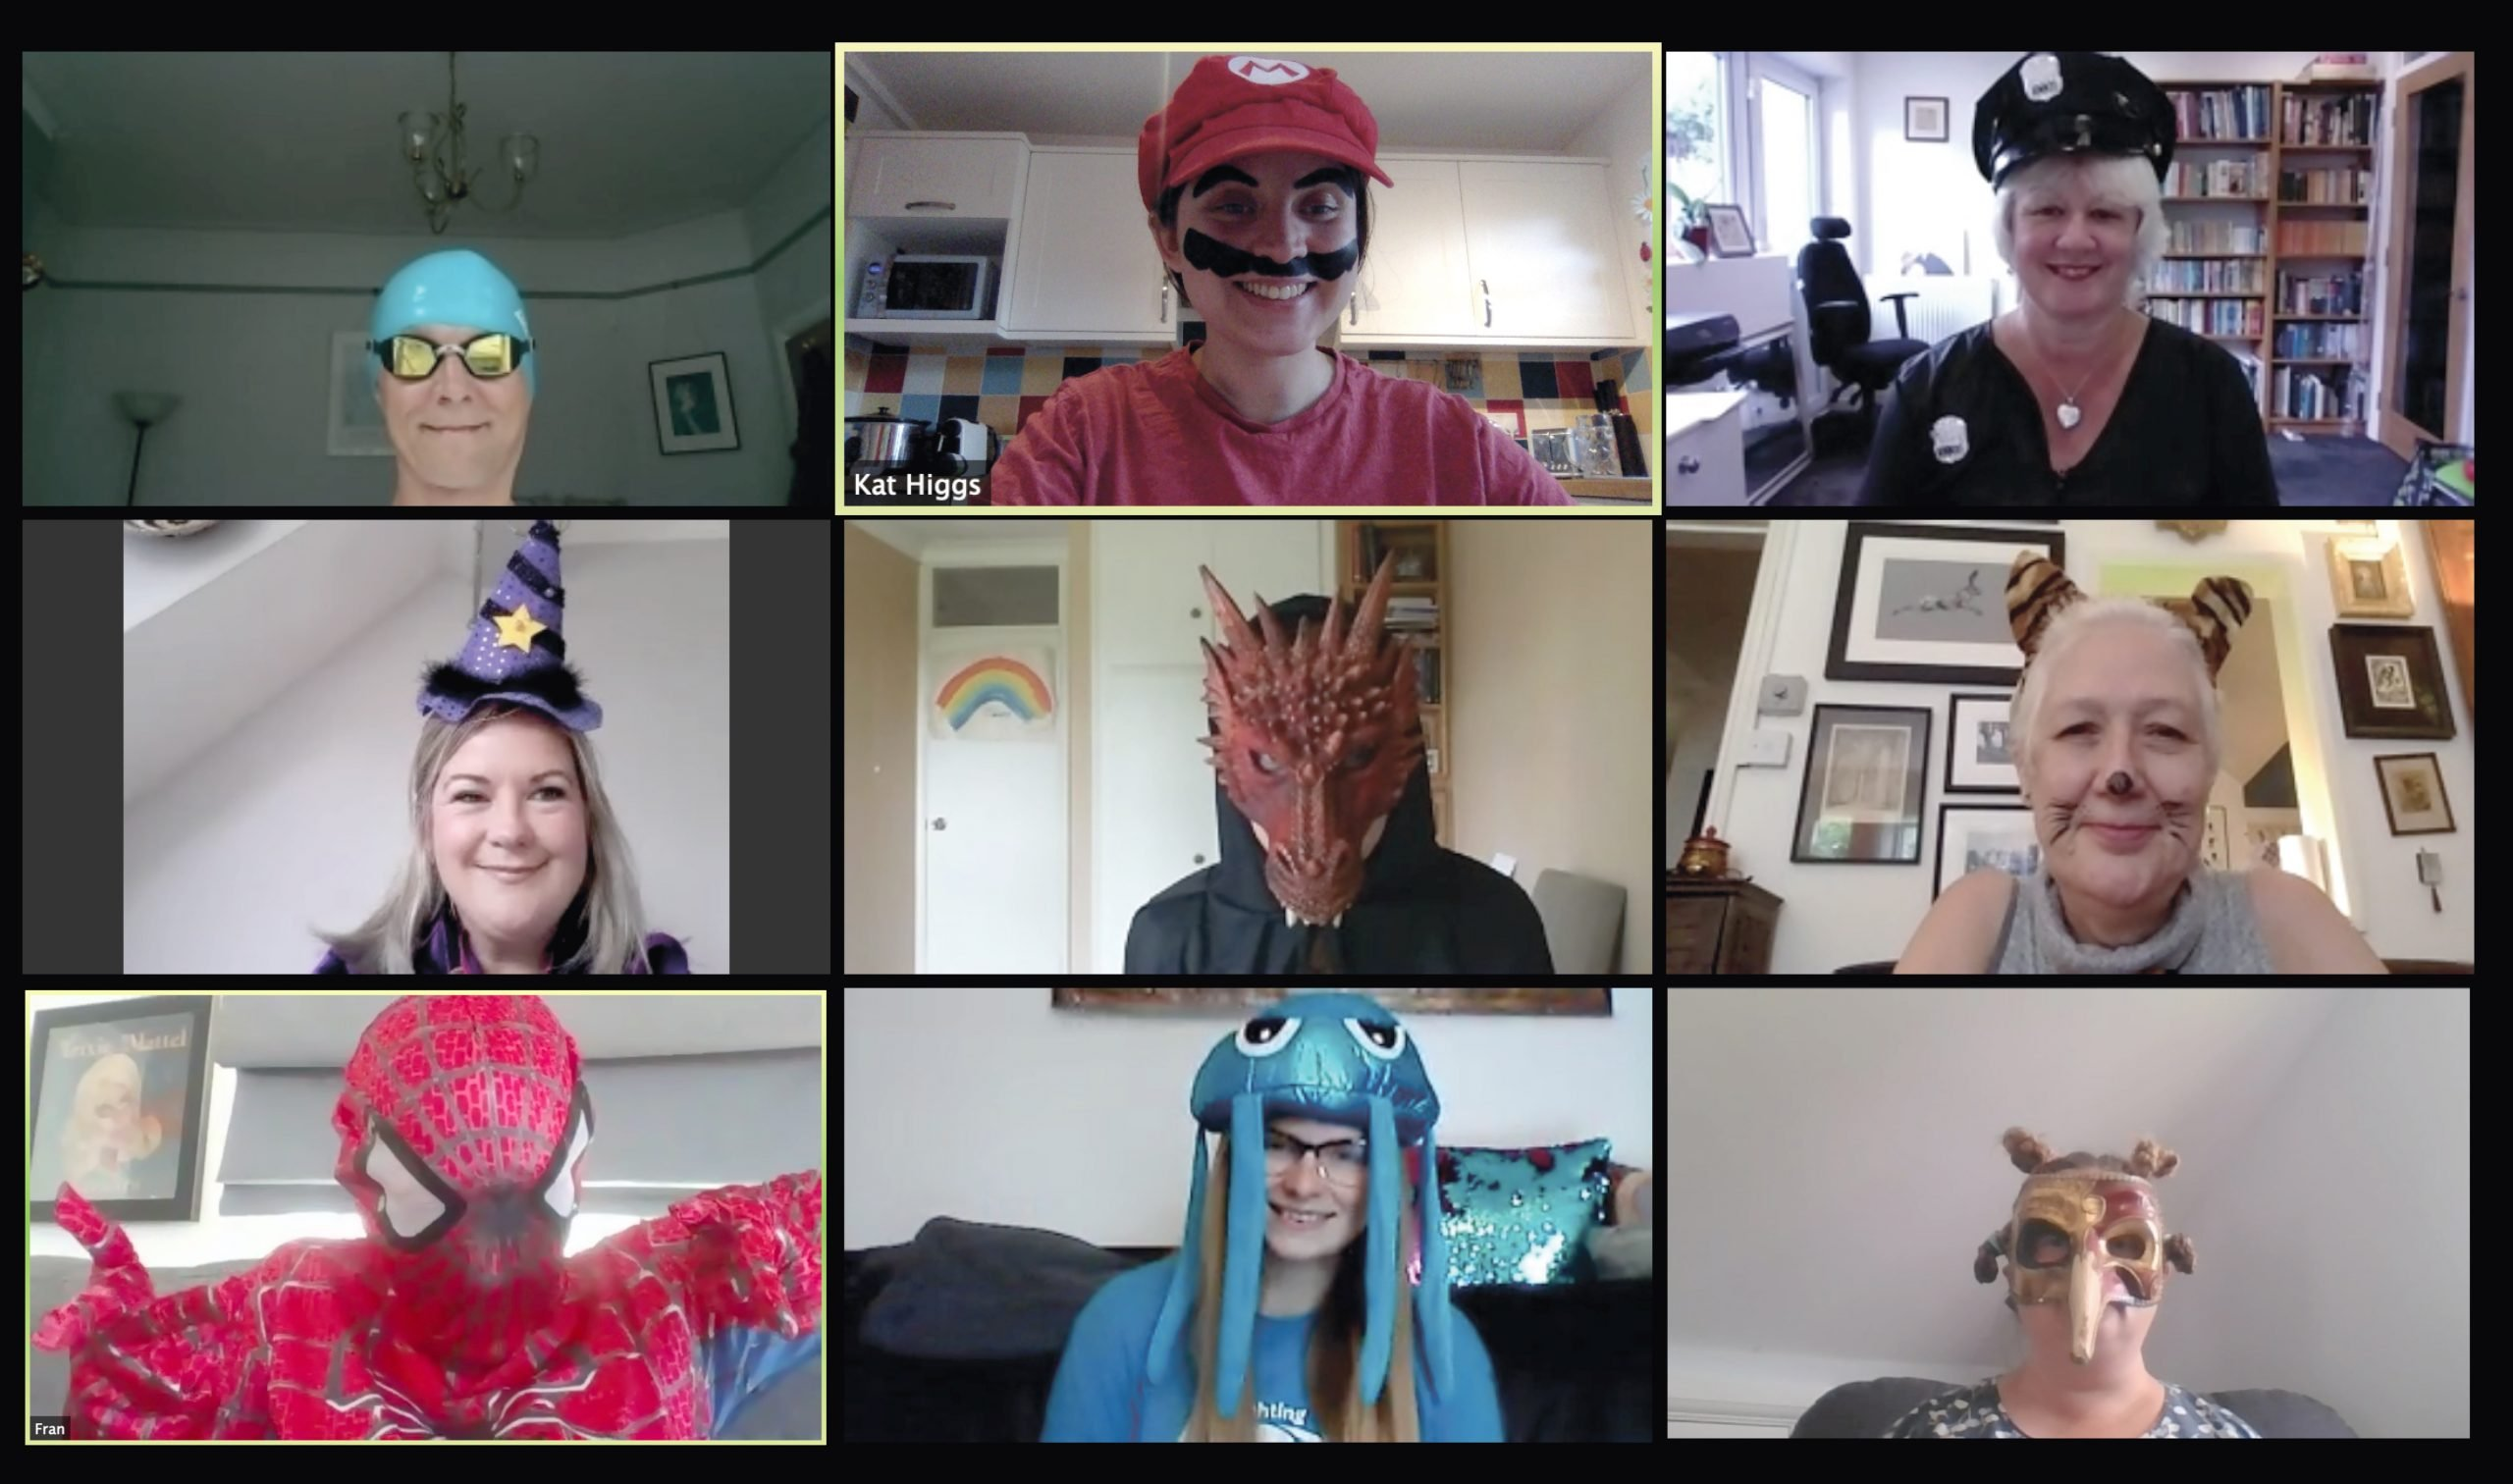 a screen shot of the CHECT team wearing fancy dress on a Zoom call.